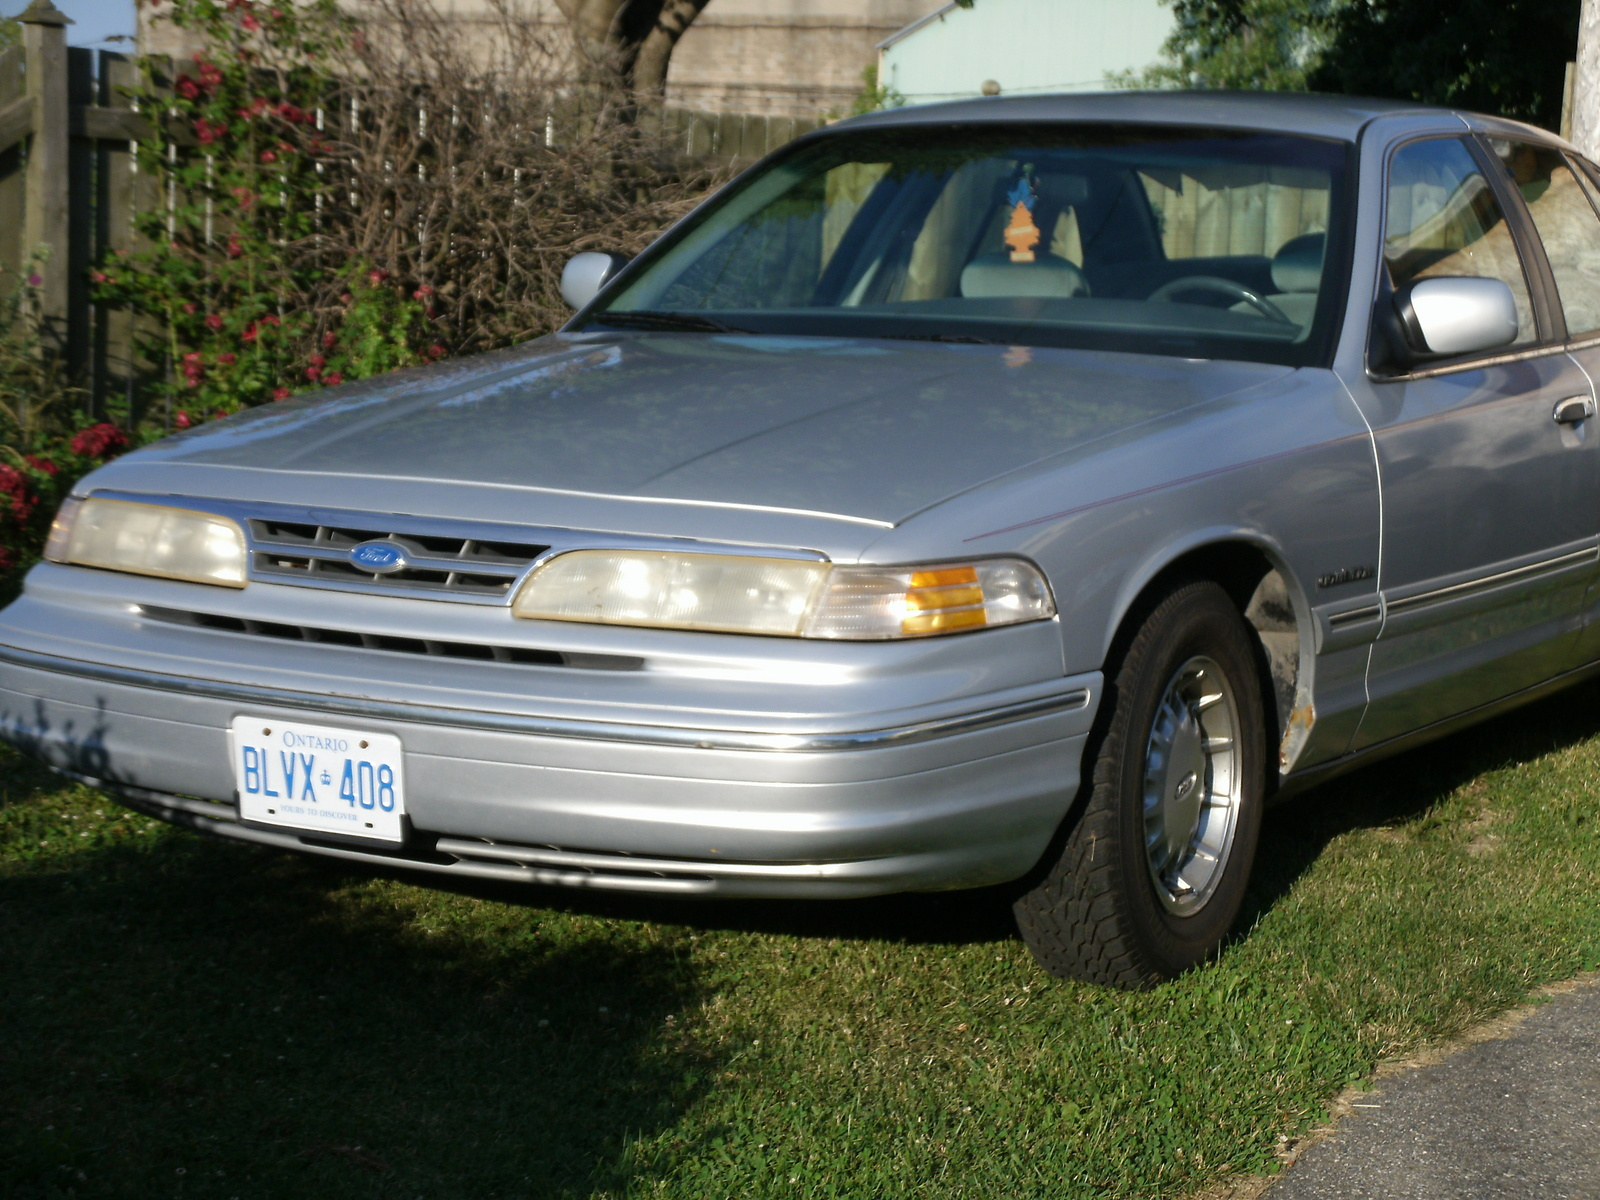 1995 Ford Crown Victoria 4 Dr LX Sedan picture, exterior